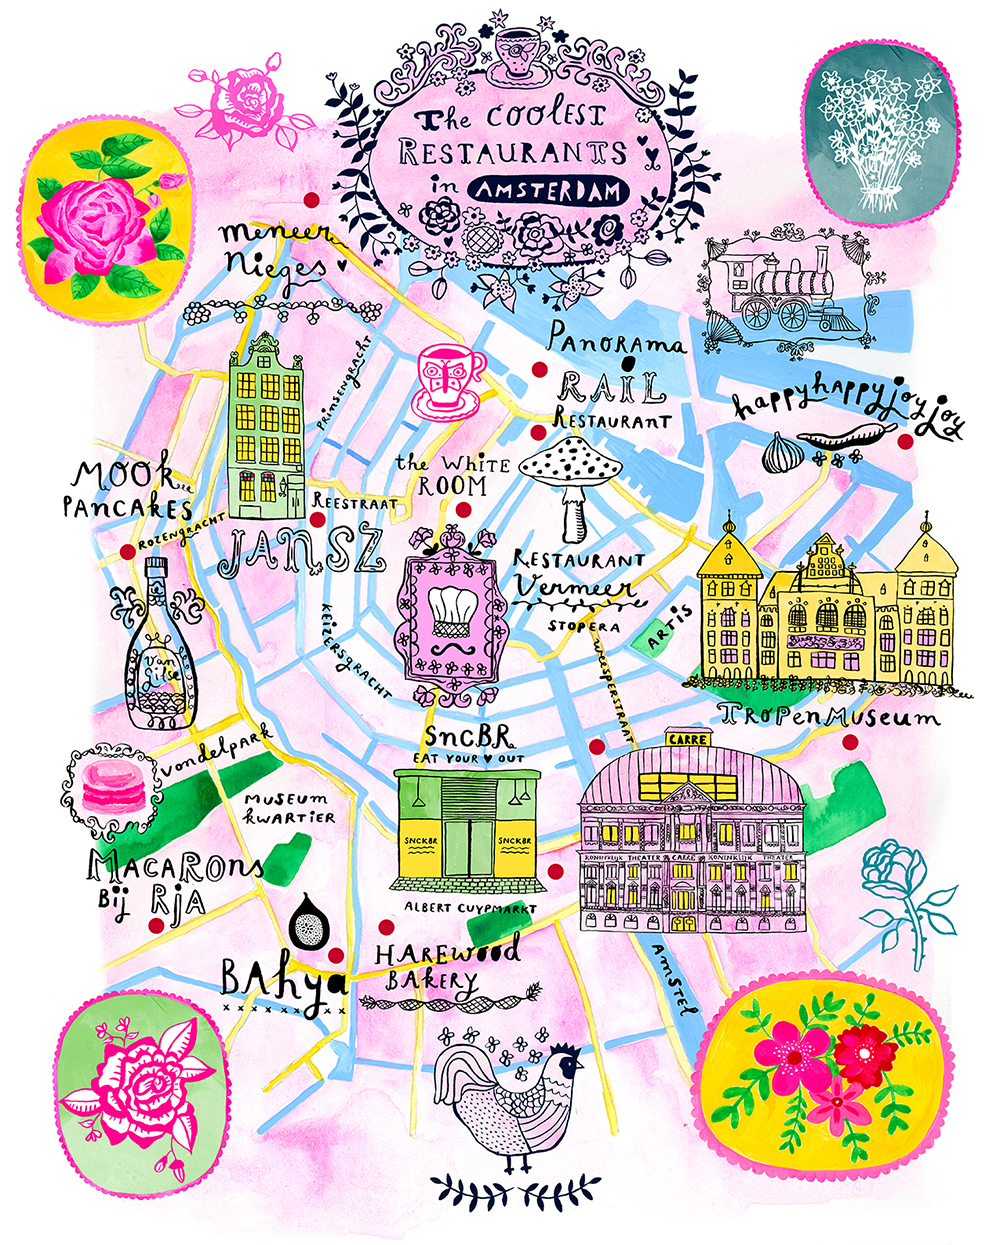 Map Amsterdam by Marenthe.jpg